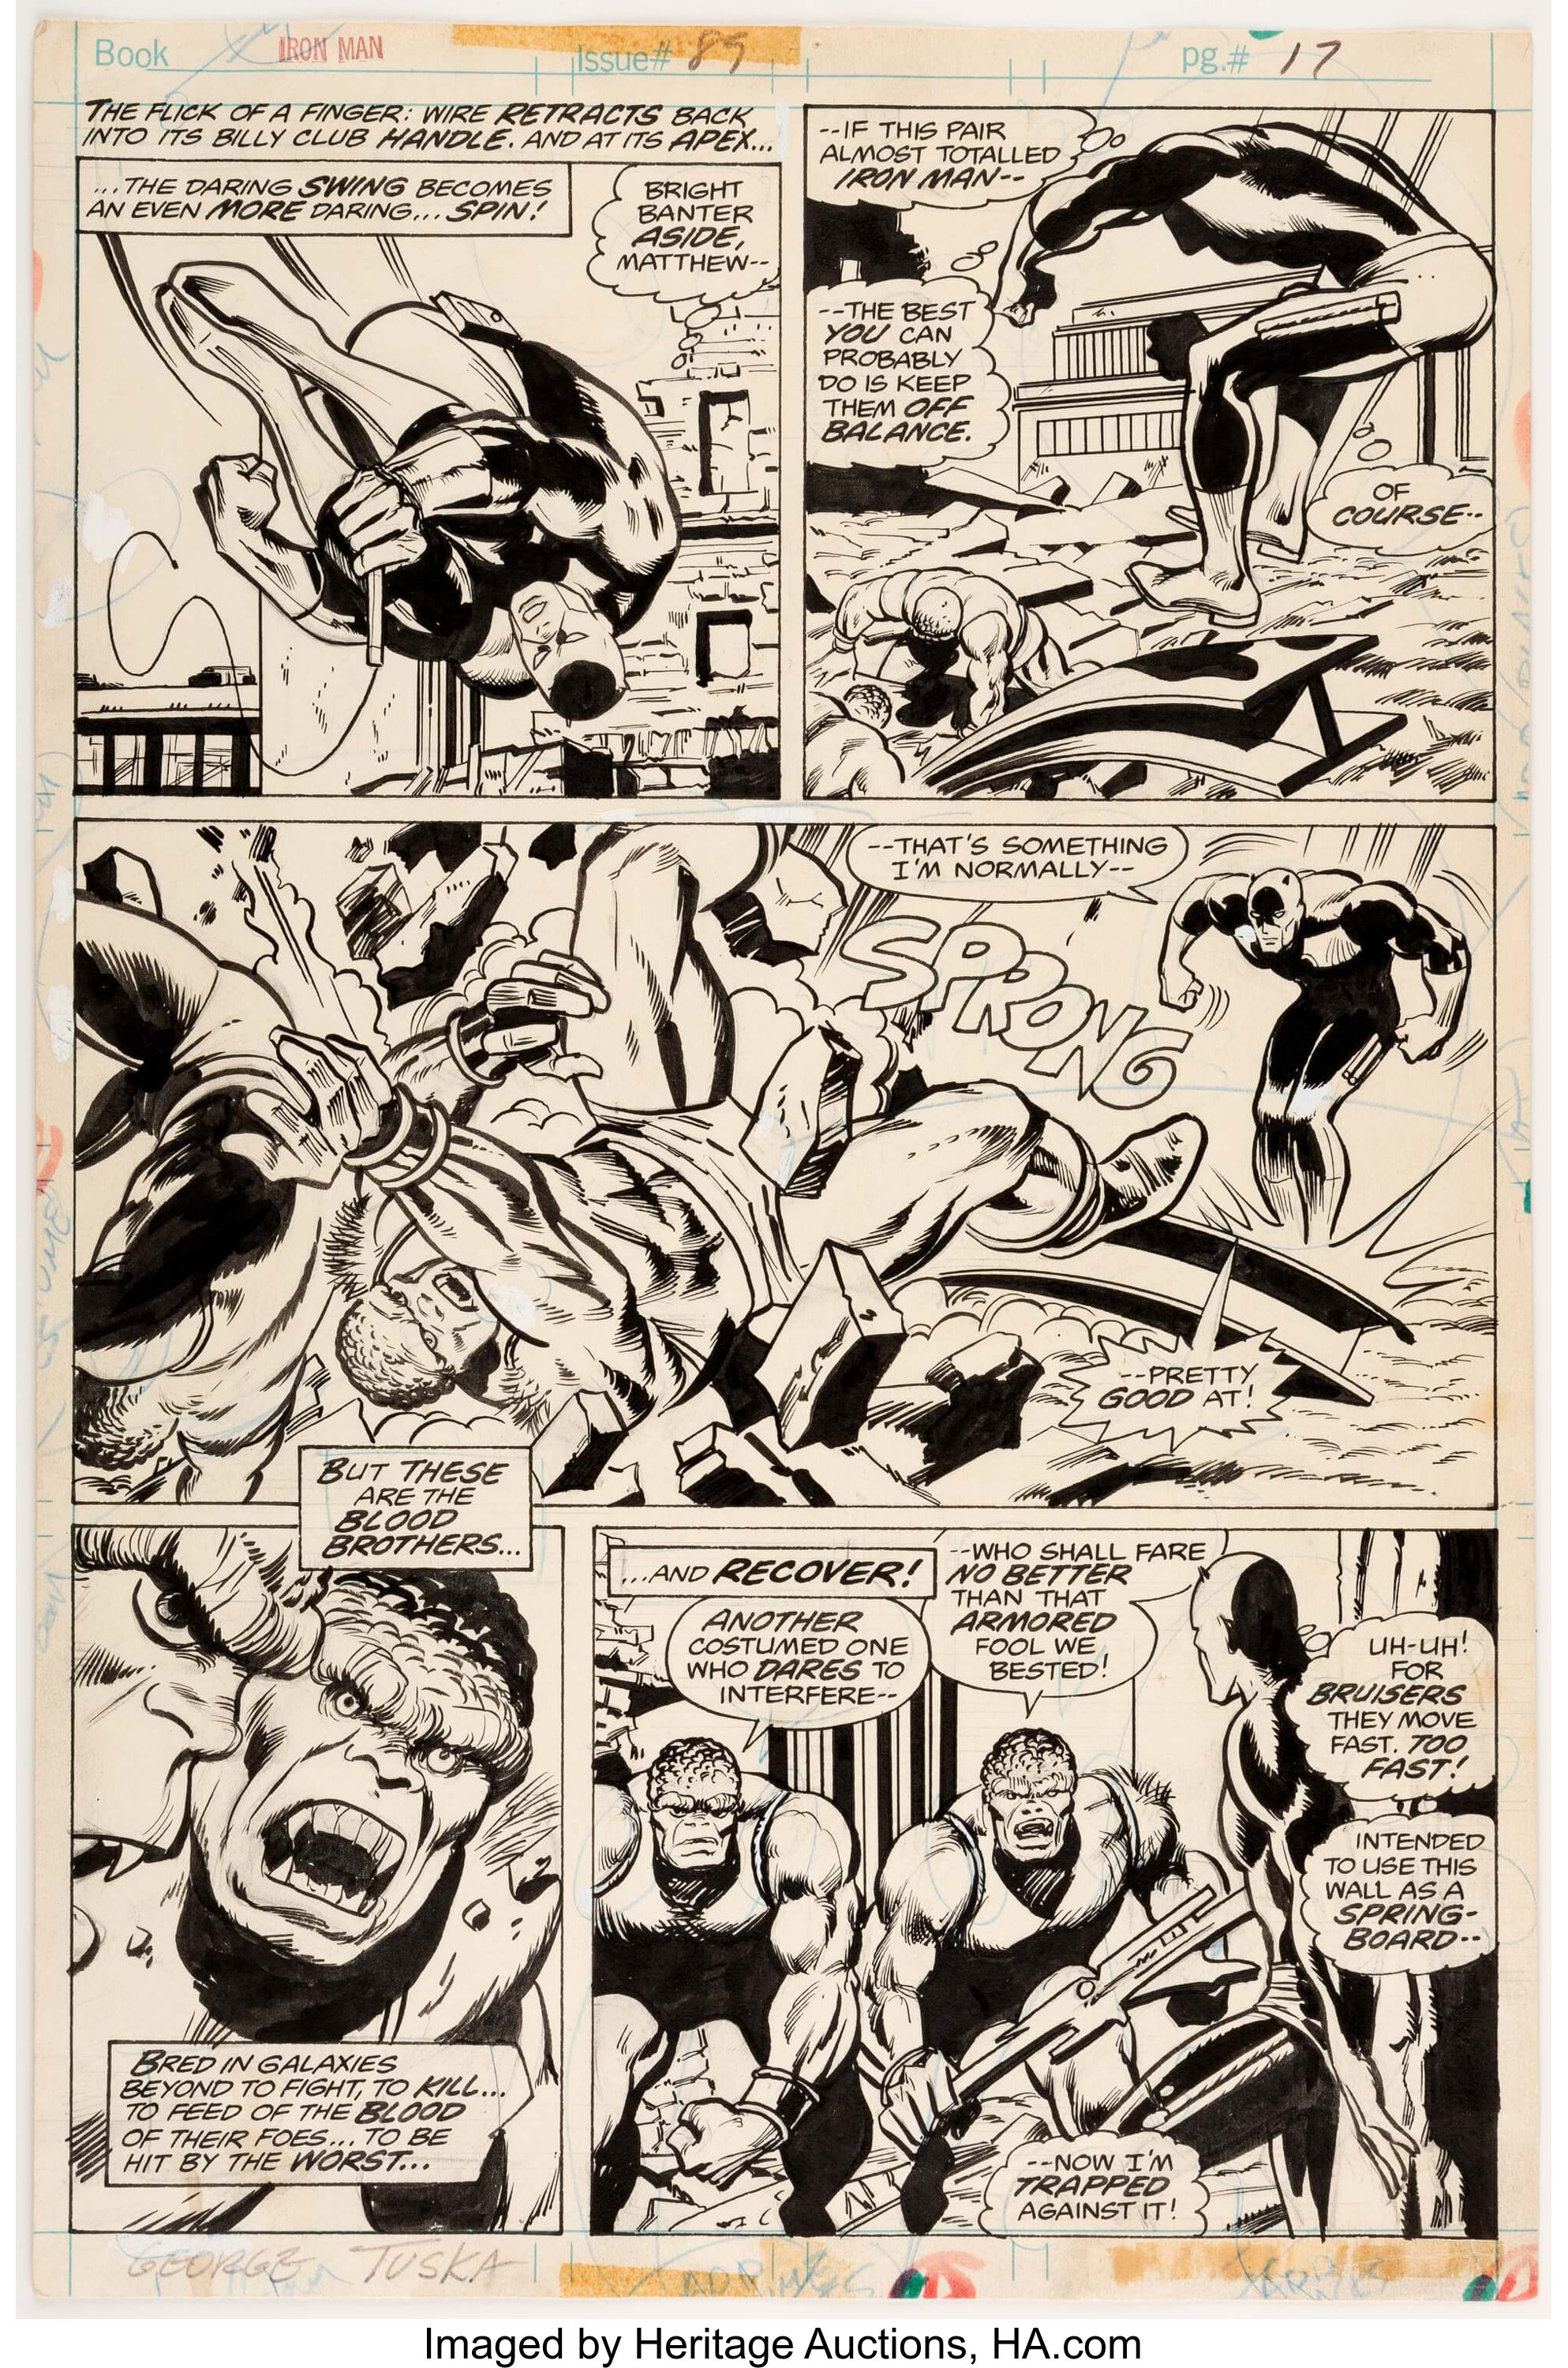 George Tuska And Vince Colletta Iron Man 89 Story Page 11 Lot 13127 Heritage Auctions